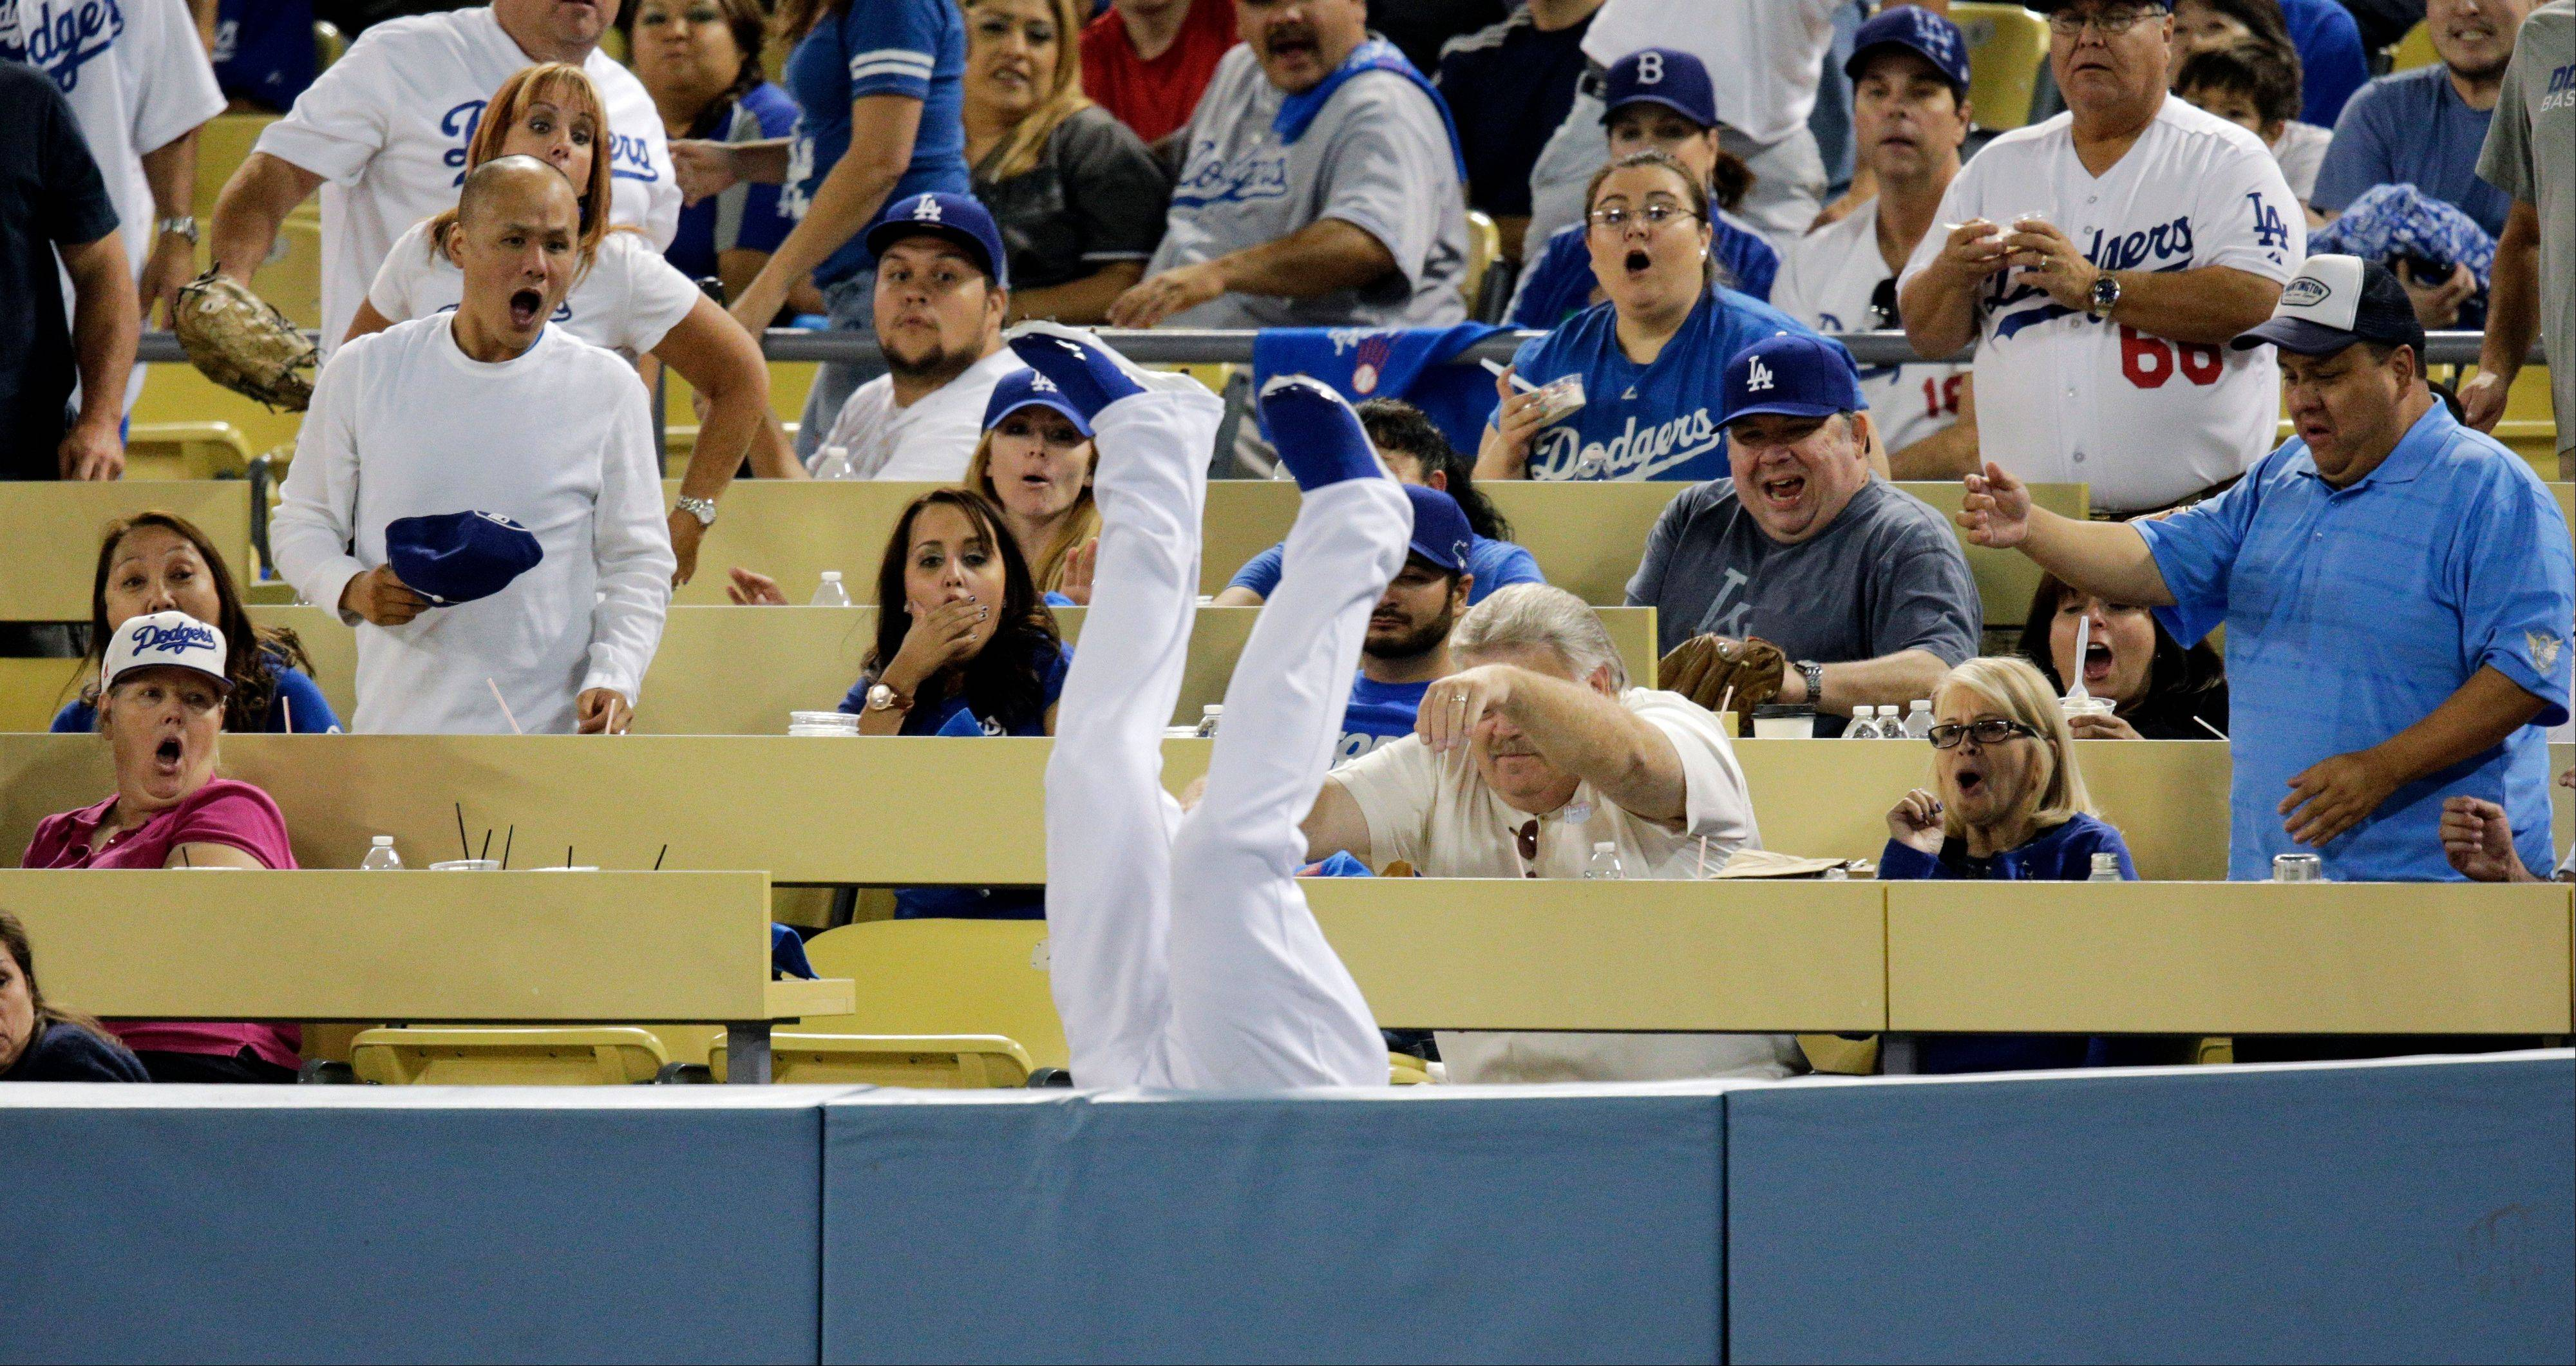 Fans react as Los Angeles Dodgers left fielder Carl Crawford falls upside down over the rail after catching a foul ball hit by Atlanta Braves' Justin Upton during the seventh inning in Game 3 of the National League division baseball series Sunday, Oct. 6, 2013, in Los Angeles.